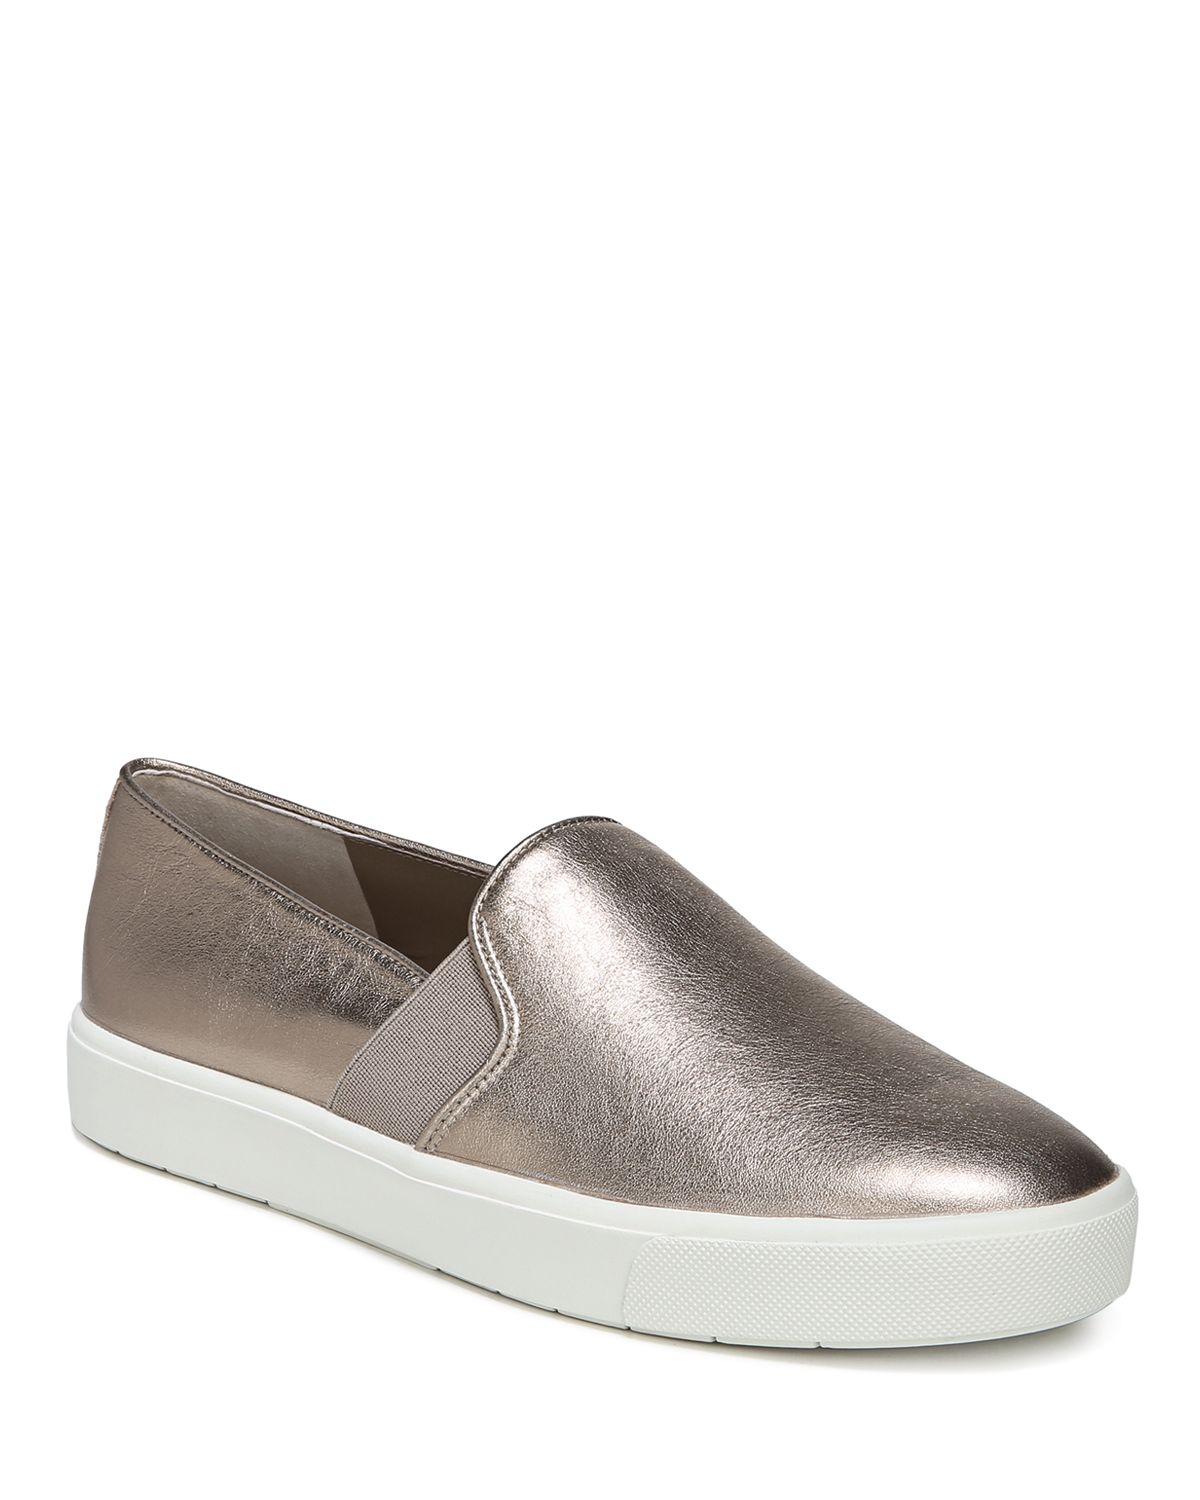 Vince Women's Blair Leather Slip-On Sneakers - 100% Exclusive